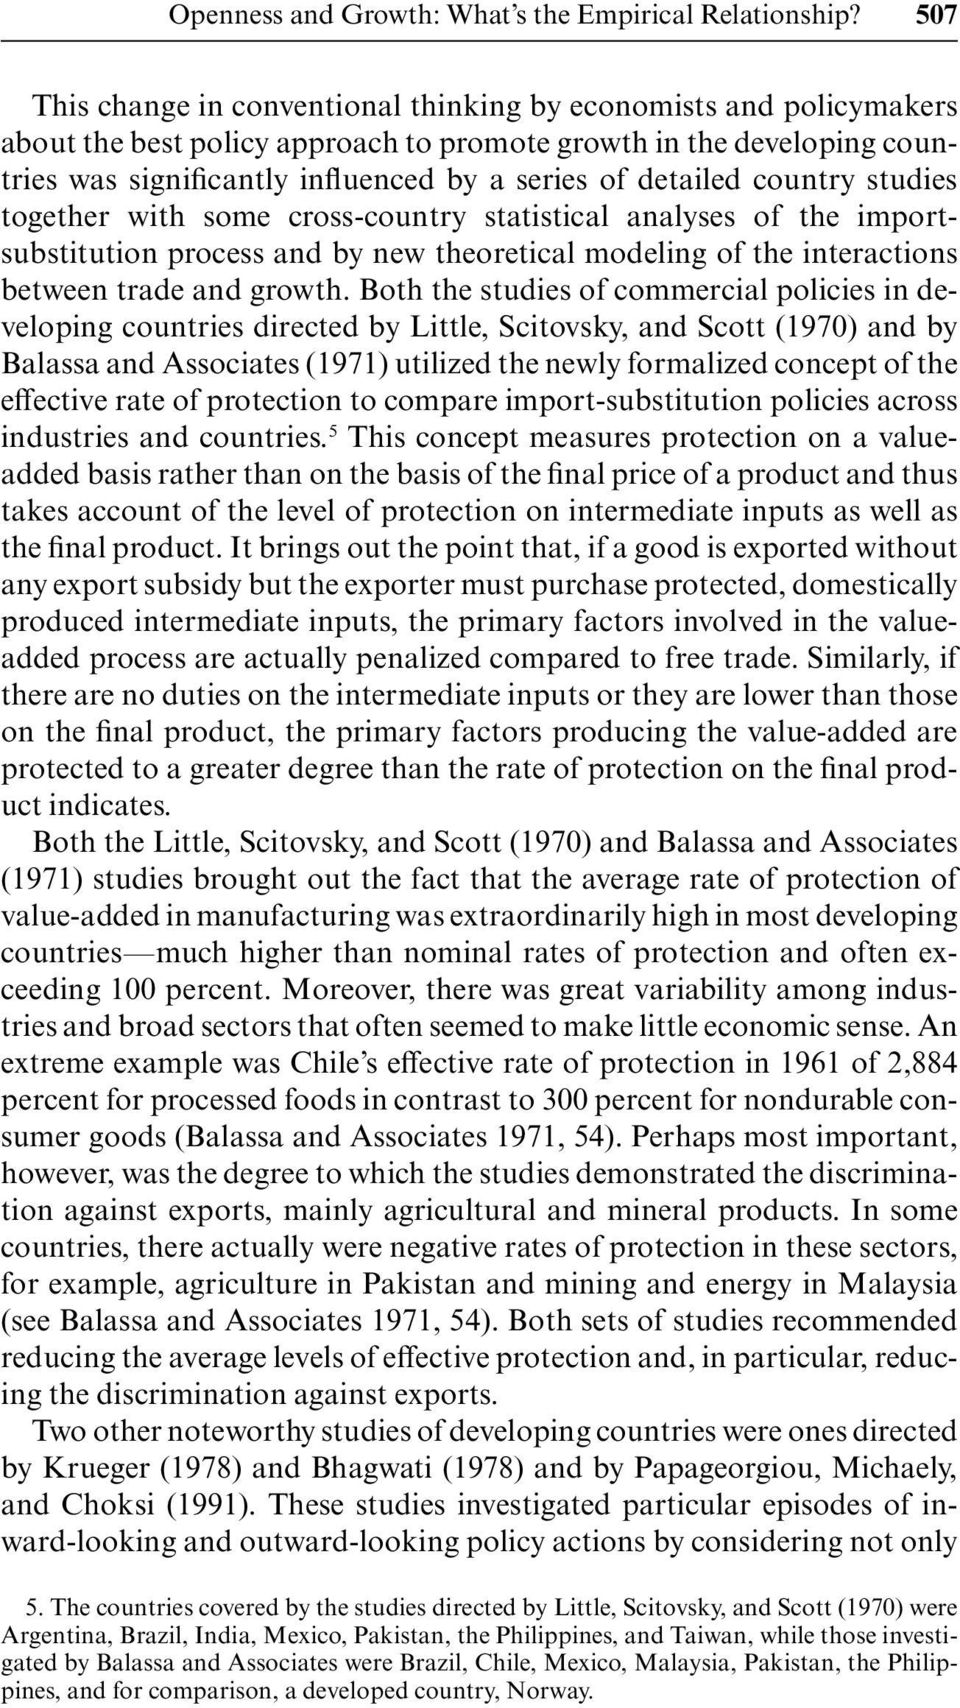 detailed country studies together with some cross-country statistical analyses of the importsubstitution process and by new theoretical modeling of the interactions between trade and growth.